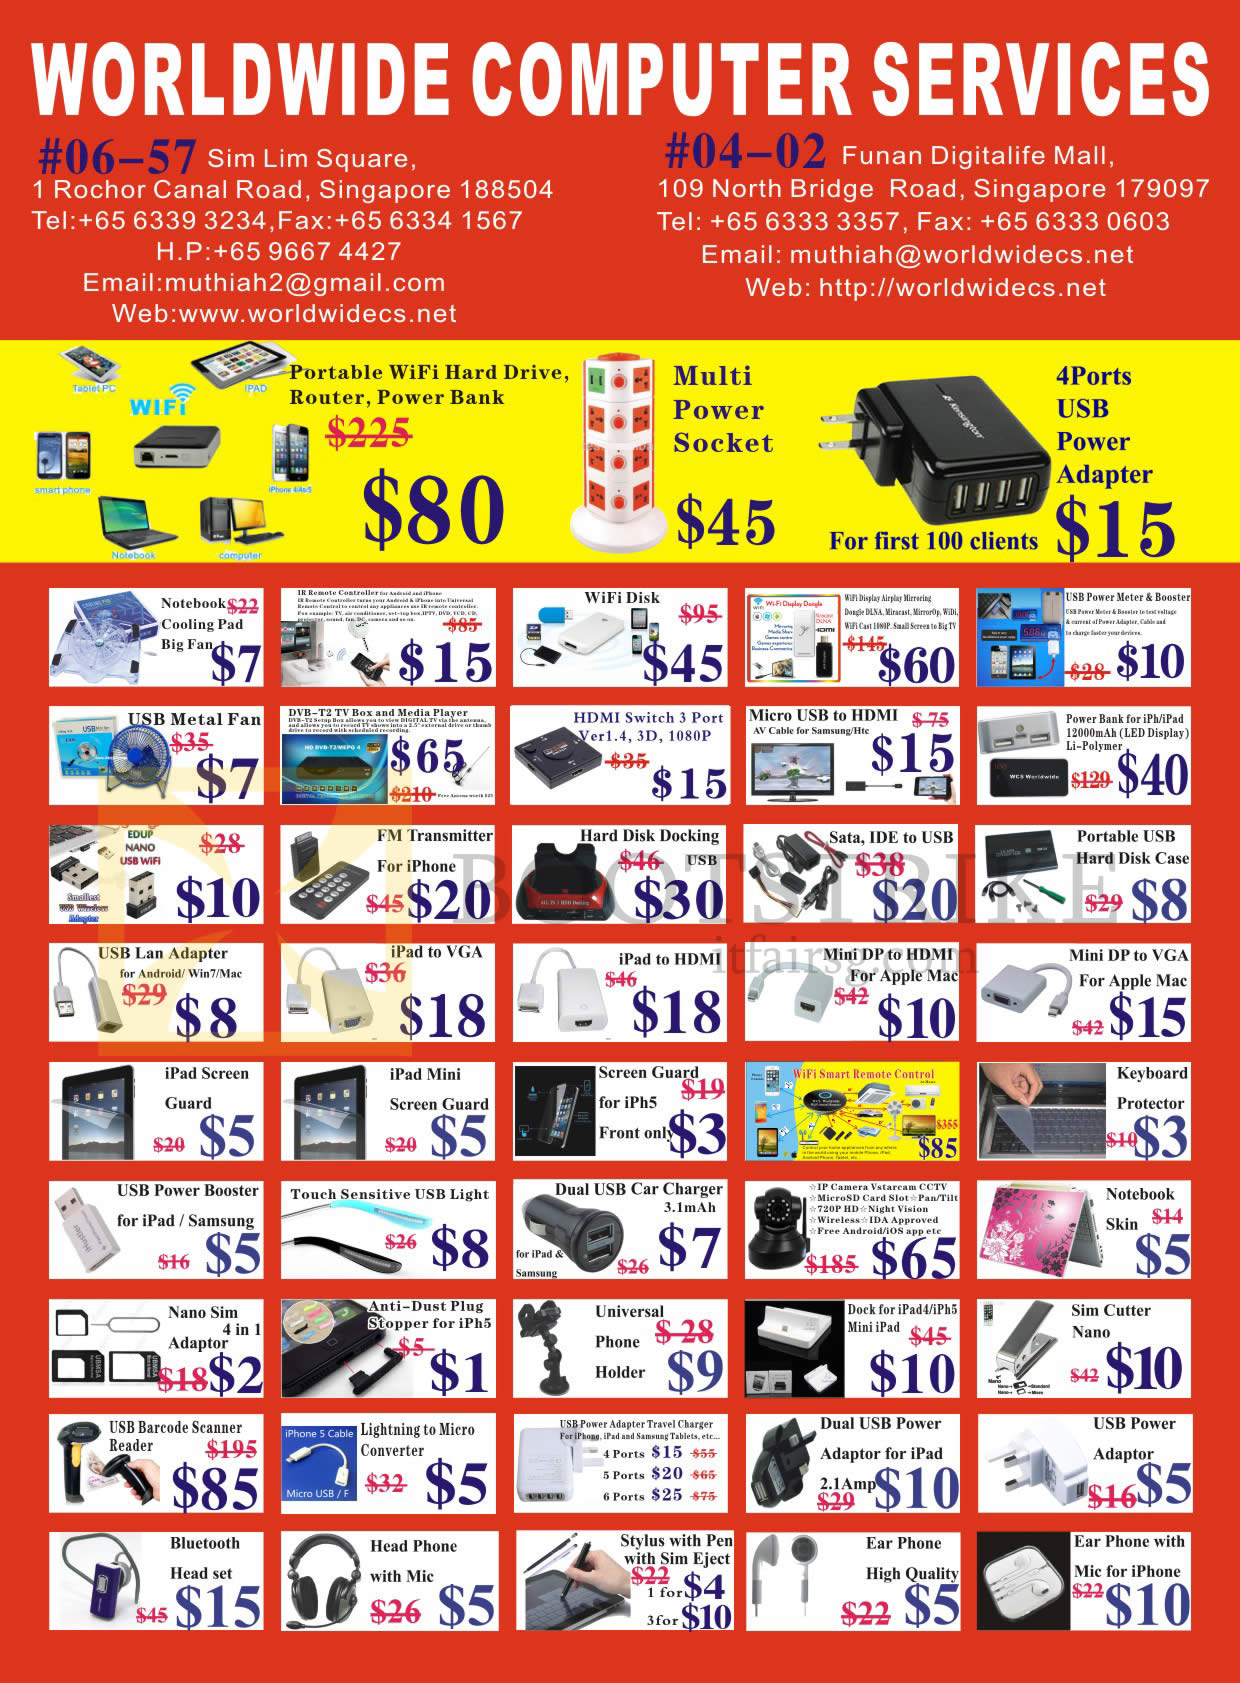 IT SHOW 2015 price list image brochure of Worldwide Computer Services Accessories Cooling Fan, Mini DP, Hard Disk Docking, USB Lan Adapter, IPad Screen Protector, Headphone, Bluetooth, Earphones